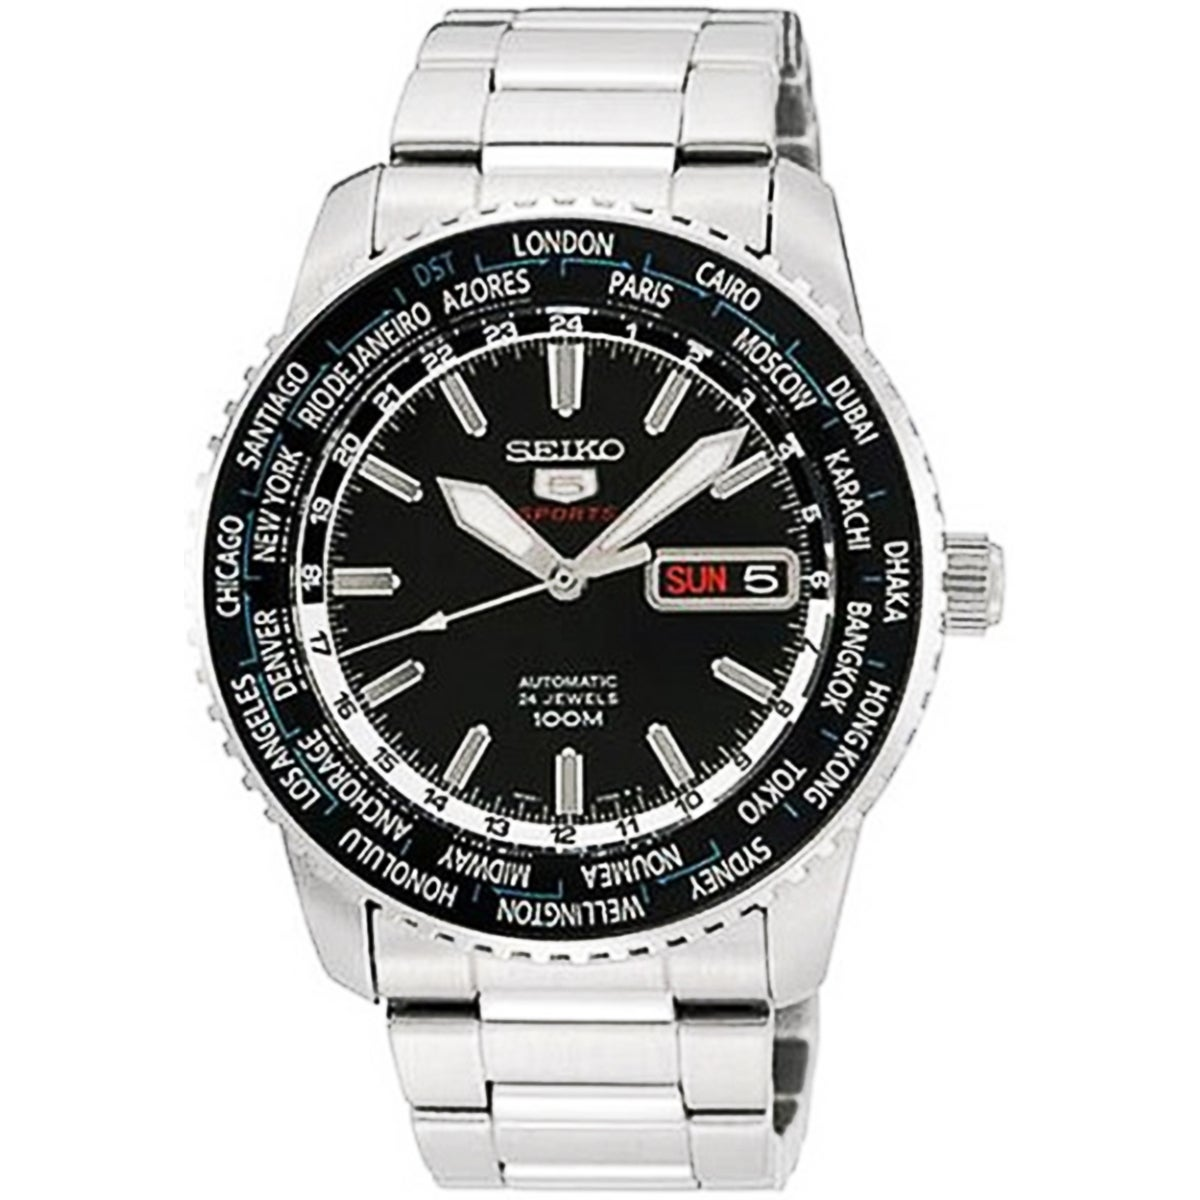 Seiko Men's 5 Automatic SRP127K Silvertone Stainless Steel Automatic Watch with Black Dial